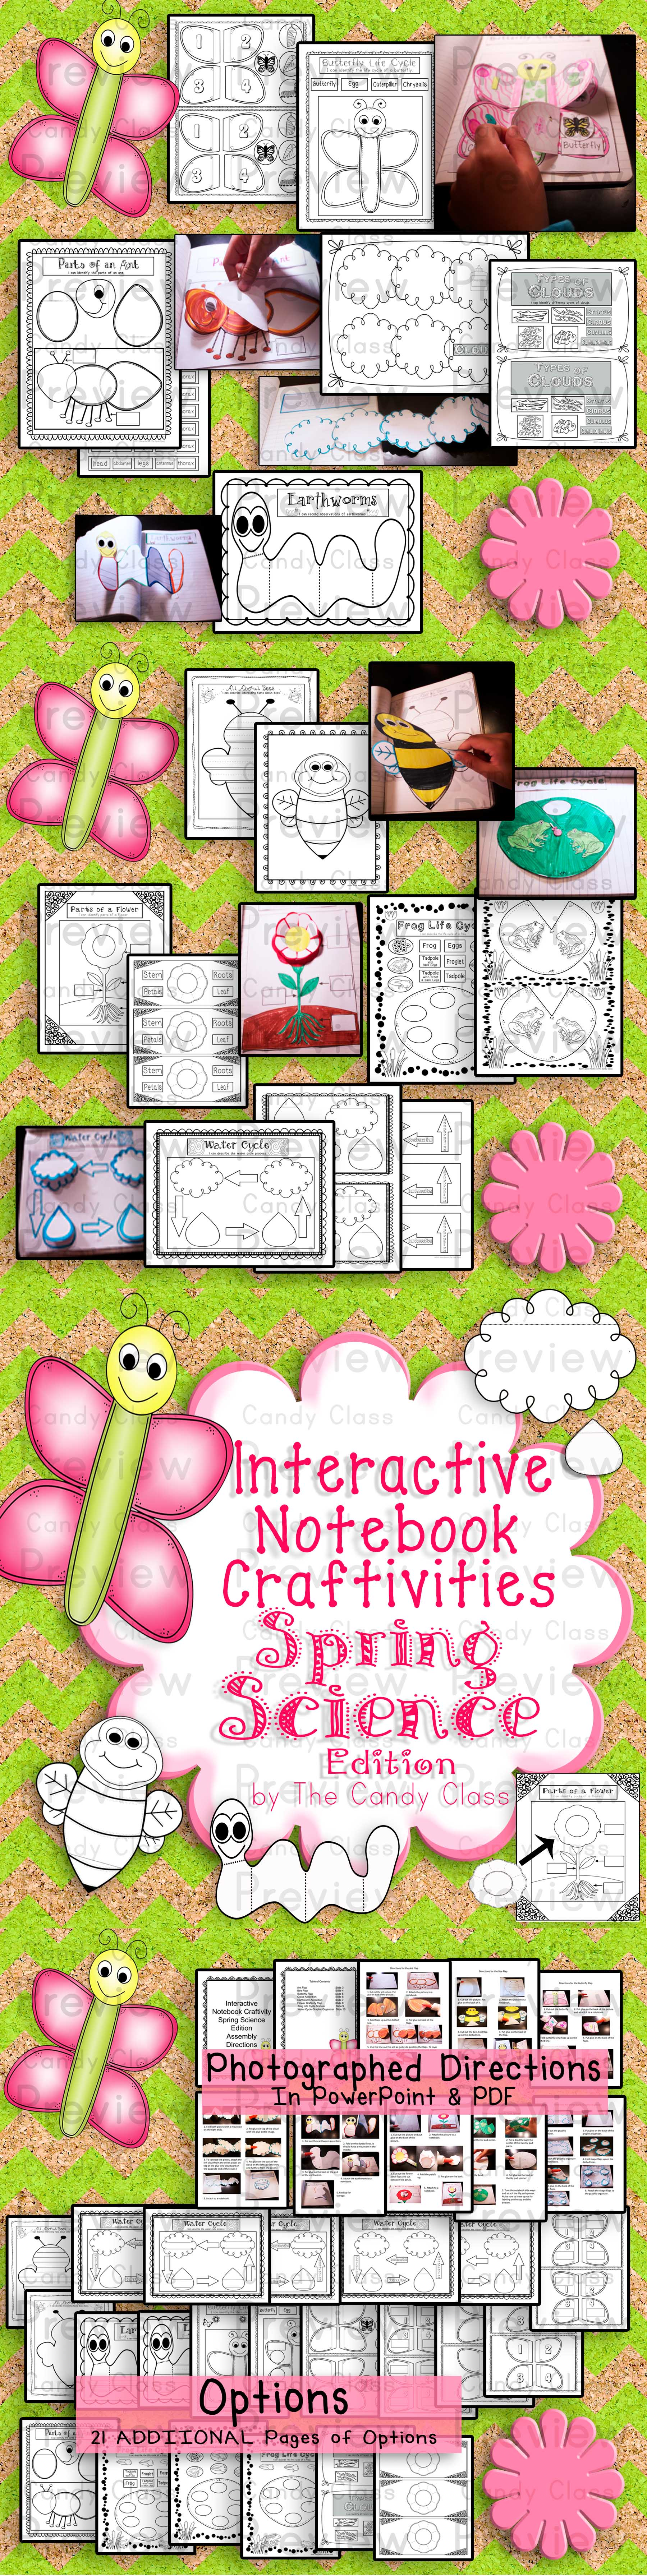 Interactive Notebook Craftivities Spring Science Edition- 40% off (only $3.60 right now) the first 24 hours, so on sale until Jan. 24th at 7:30 pm EST.